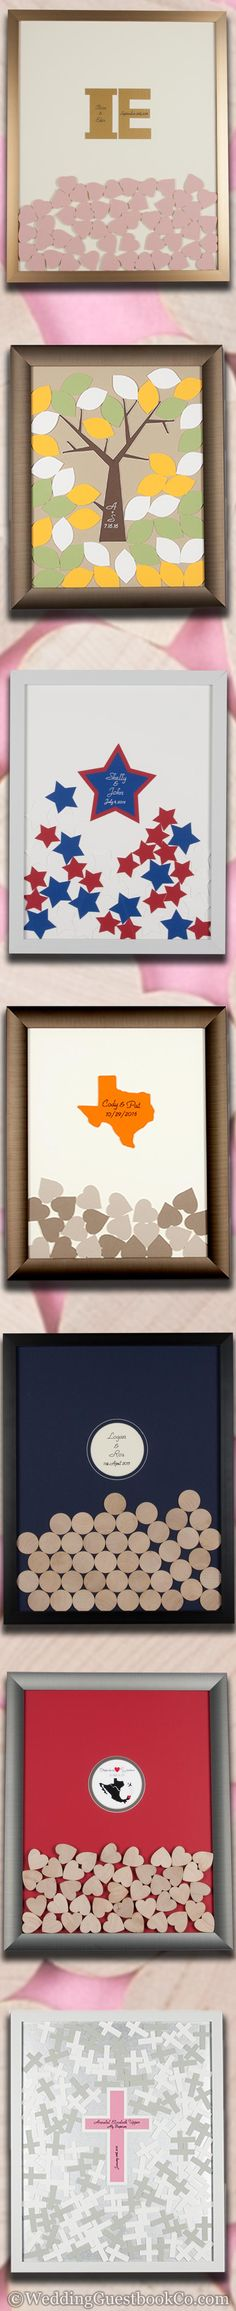 A unique alternative to the wedding guest book, simply remove the top of the frame, sign a piece, and drop it into the top plinko style. Hearts, Circles, and many other custom shapes are all possible! And with a plethora of different Frame styles and colors, background colors, piece colors and shapes, you're sure to find something to match the occasion!